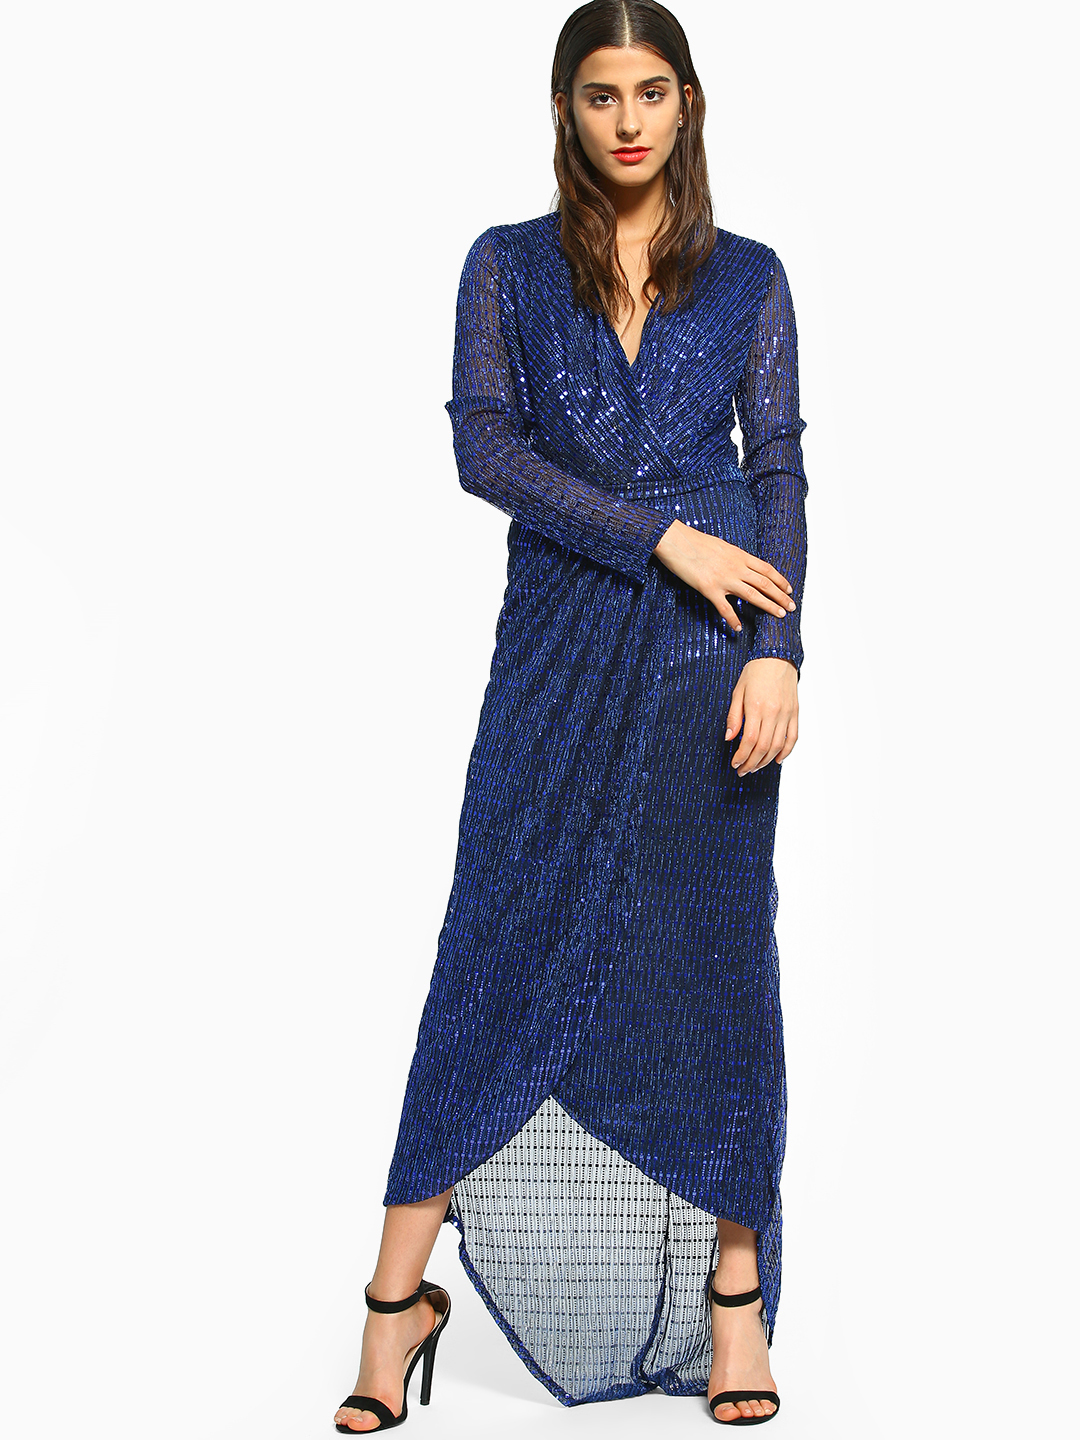 Flam Mode Blue Sequin Wrap High-Low Hem Dress 1